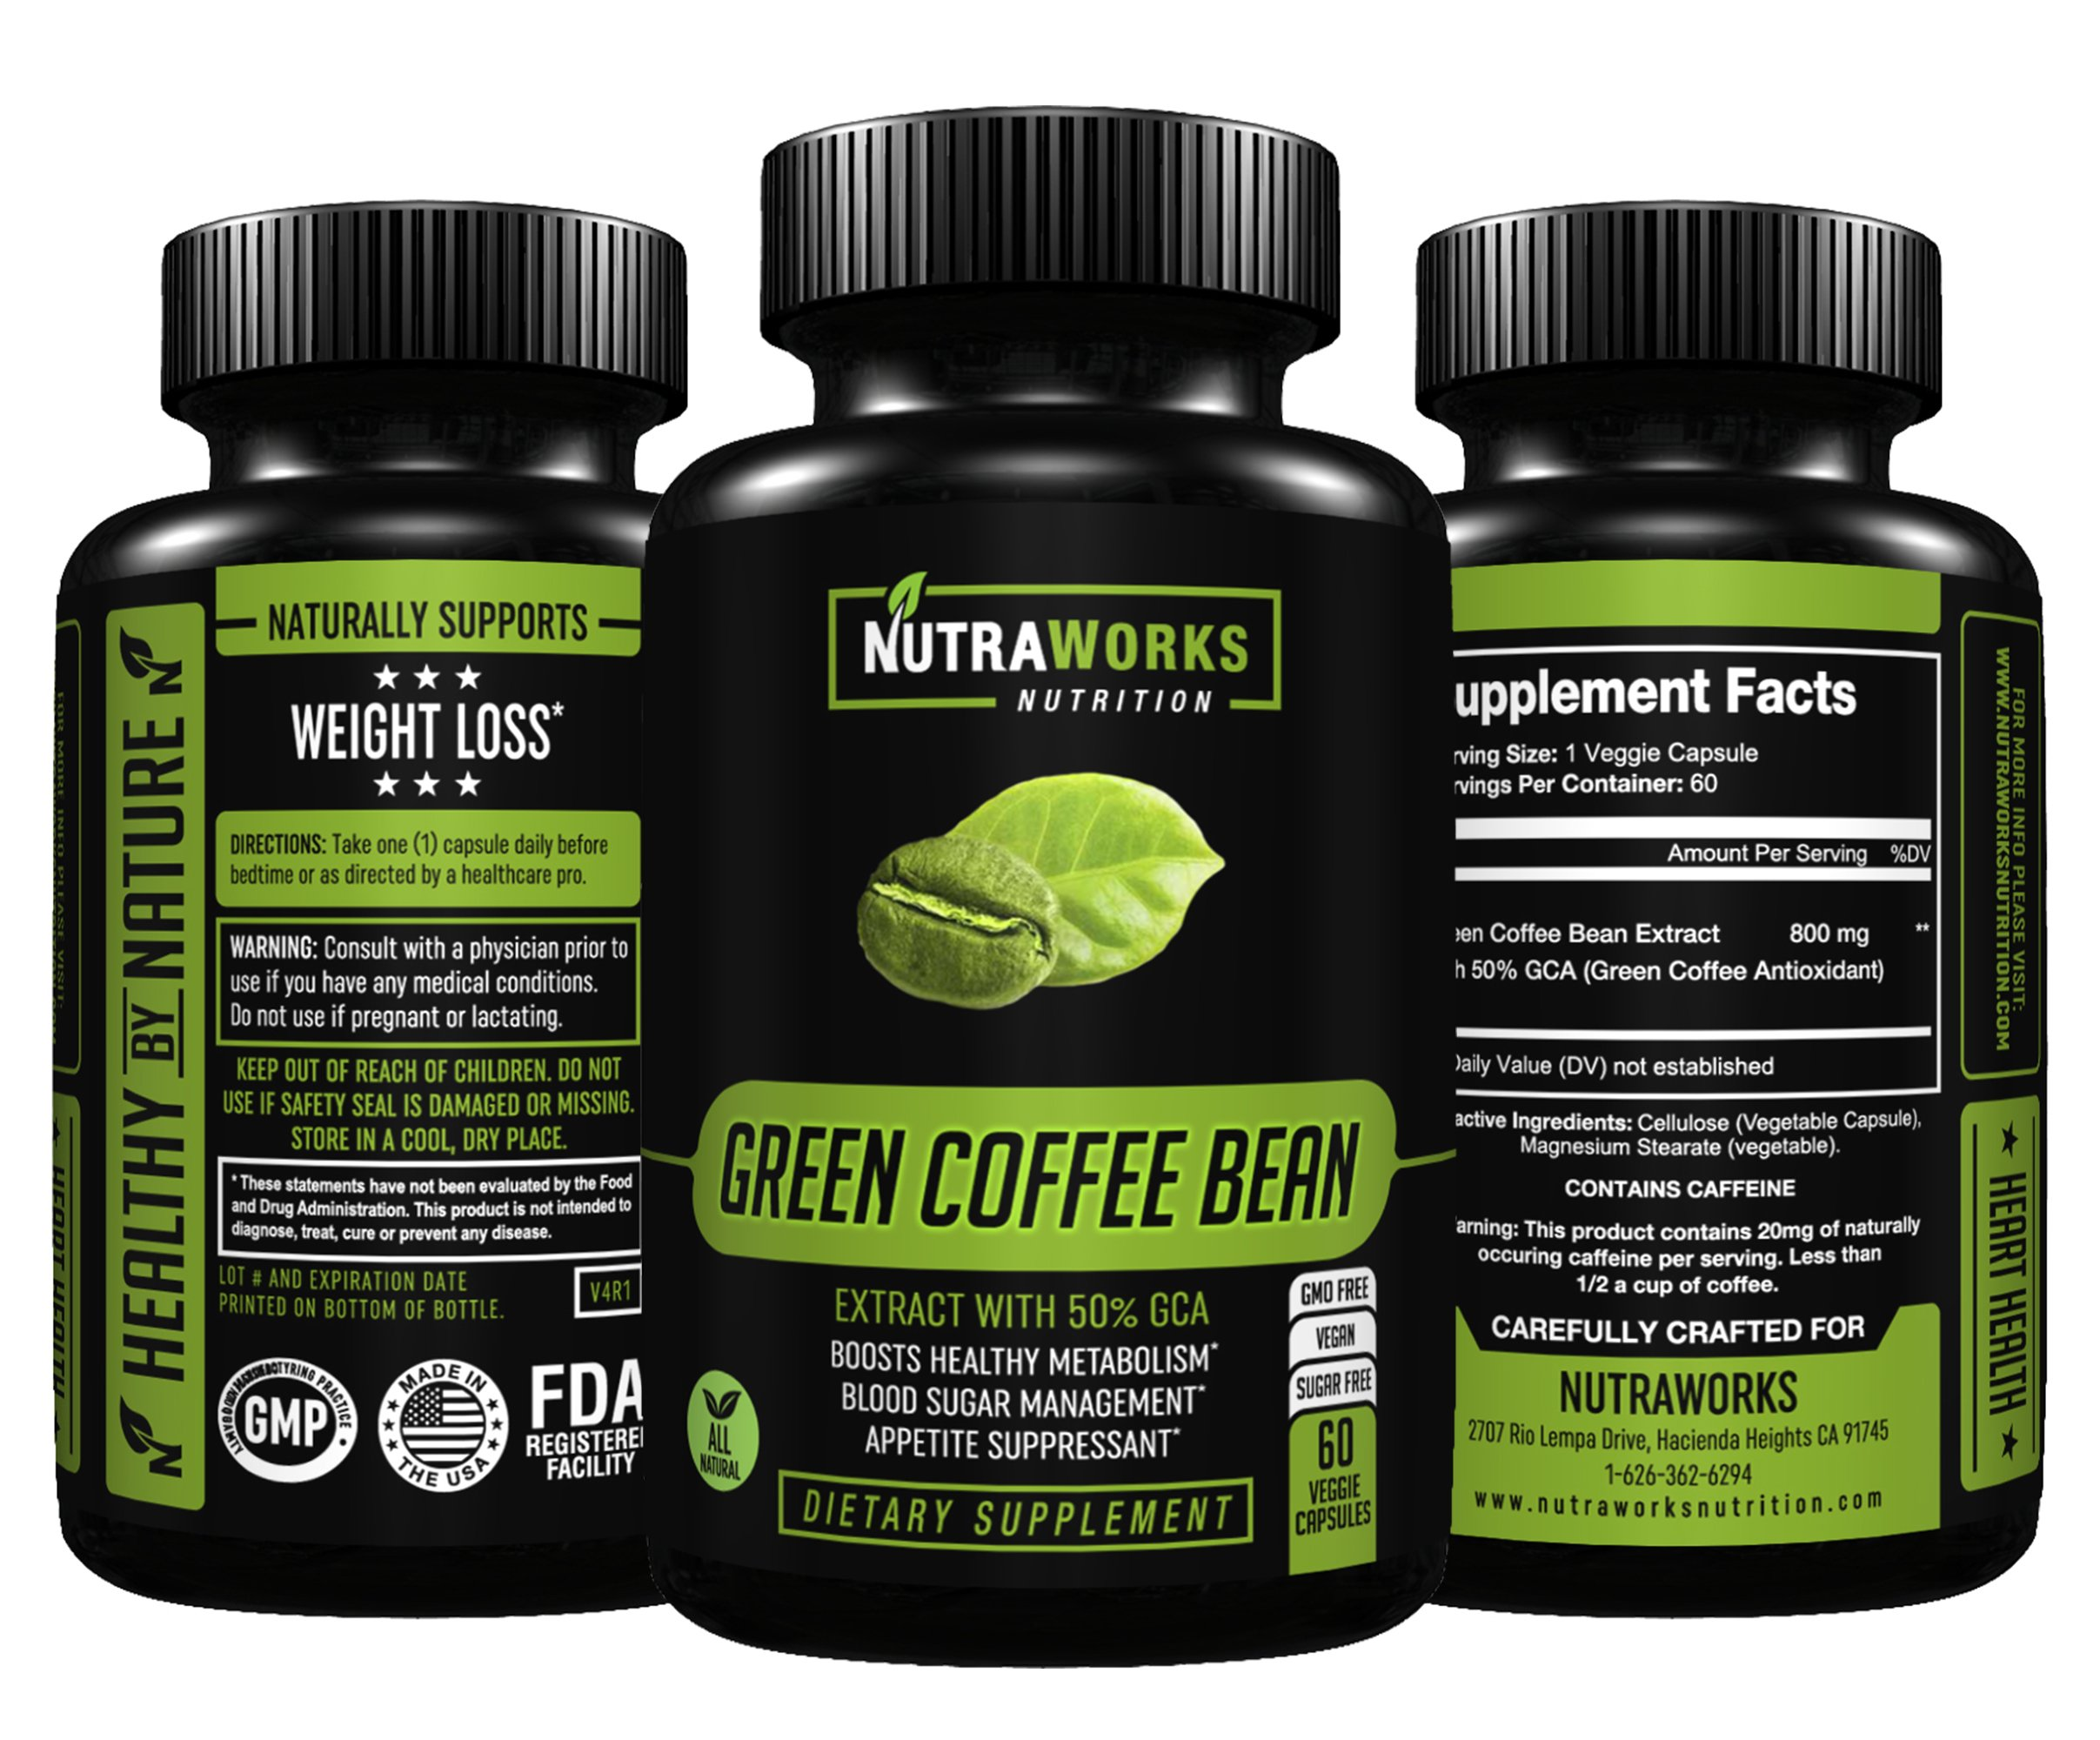 Green Coffee Bean Extract with 50% GCA 800mg - 100% Pure with Antioxidants - 100% All Natural Weight Loss Supplement, Maintains Normal Blood Sugar Levels, Non-GMO, Gluten-Free - 60 Veggie Capsules by NutraWorks Nutrition